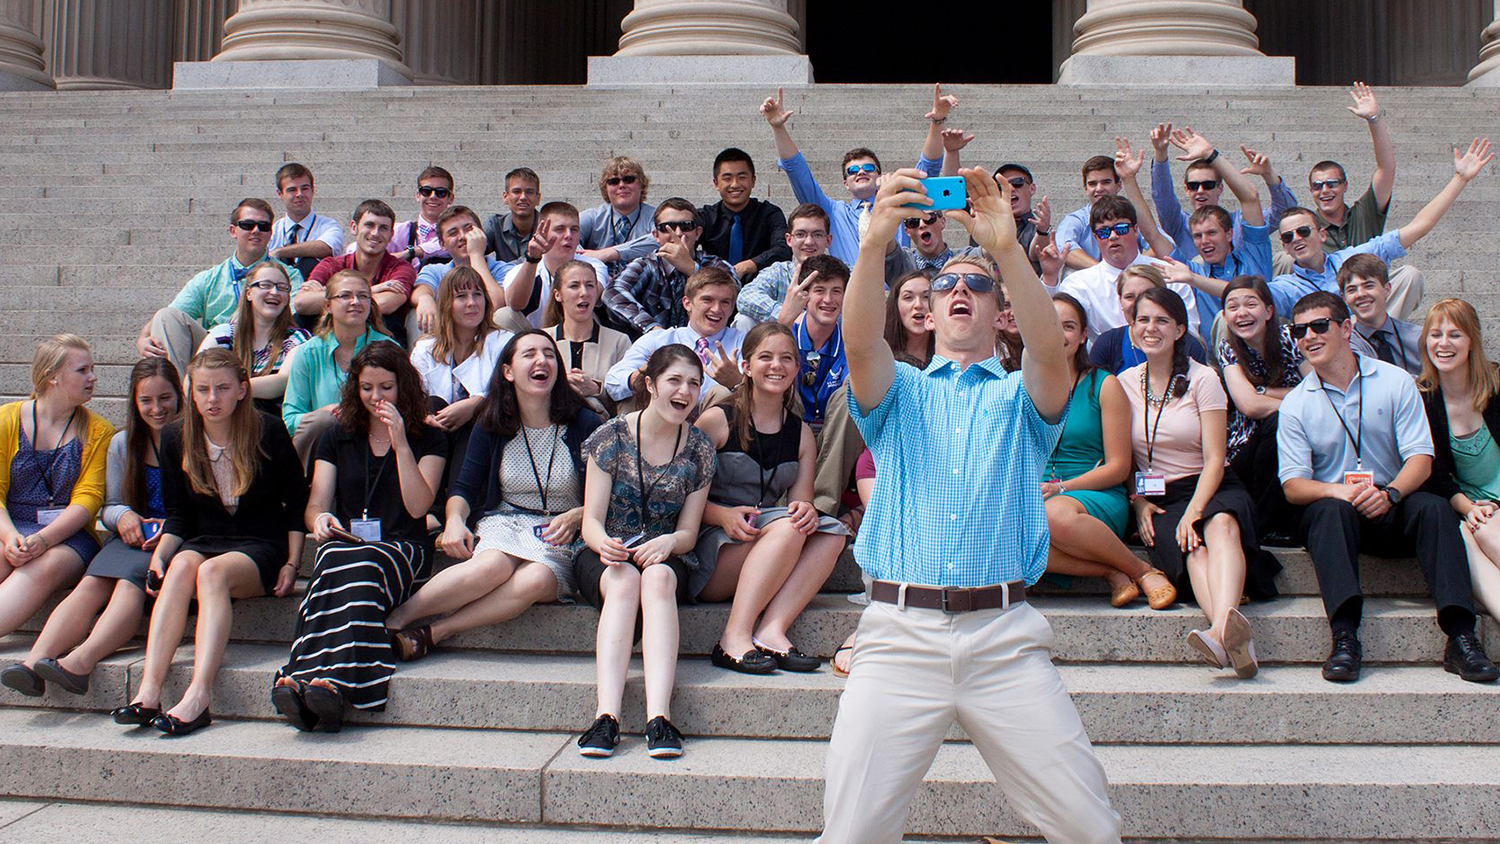 High schoolers: Apply now for the 2016 Youth Education Summit